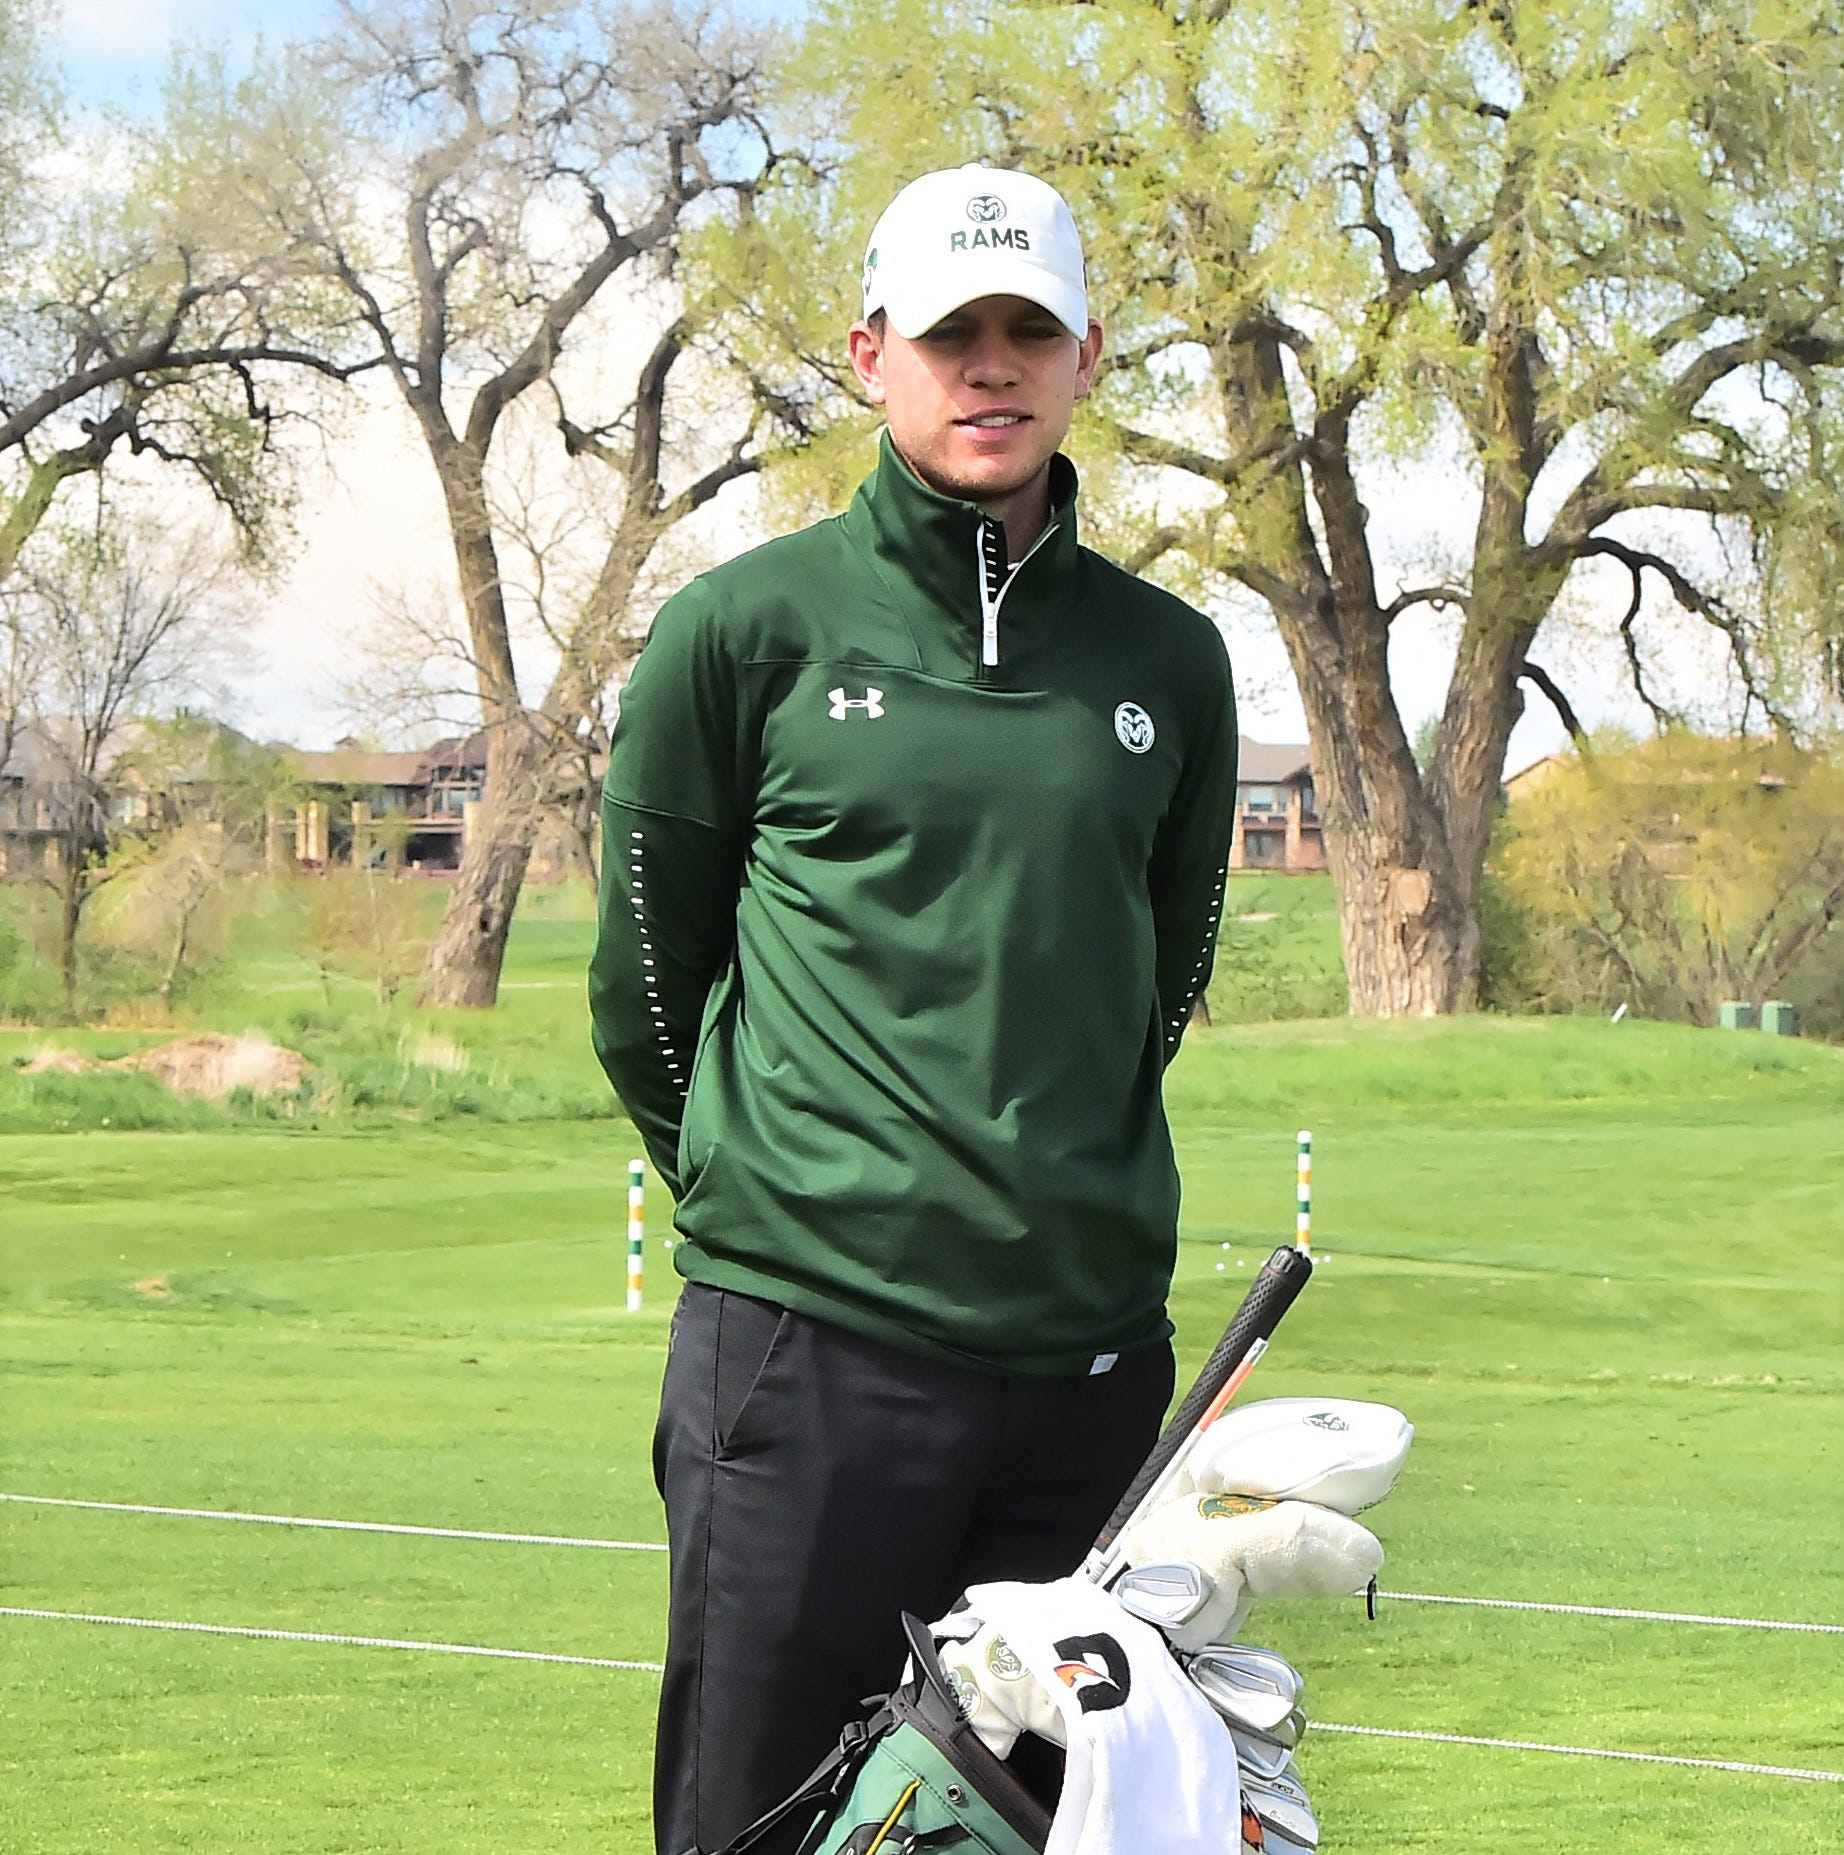 Fort Collins native A.J. Ott to carry CSU golf team's veteran memorial bag at NCAA Regional